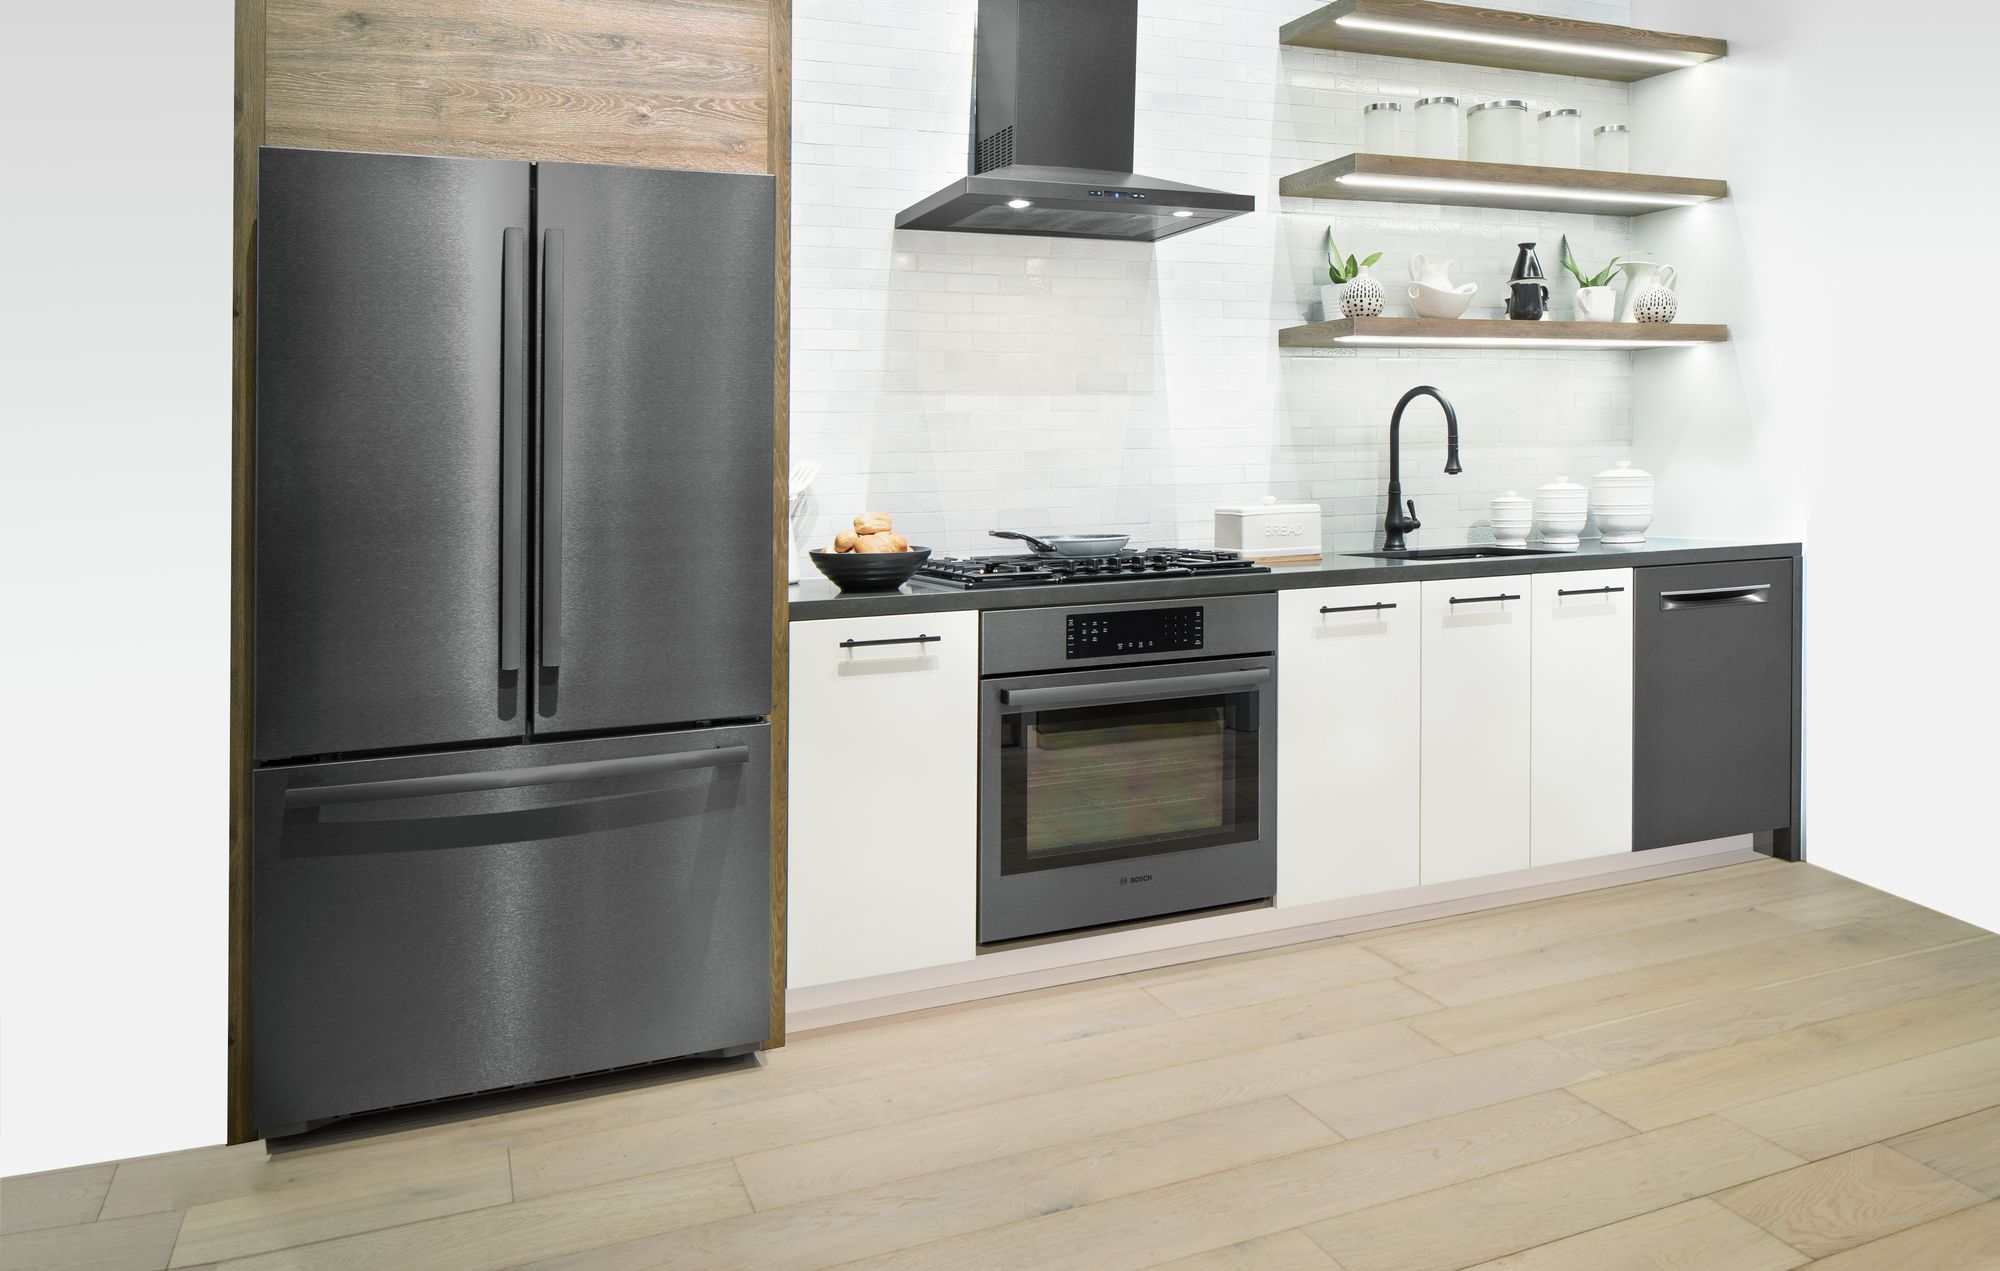 5 Reasons To Get A Black Stainless Steel Kitchen Set From